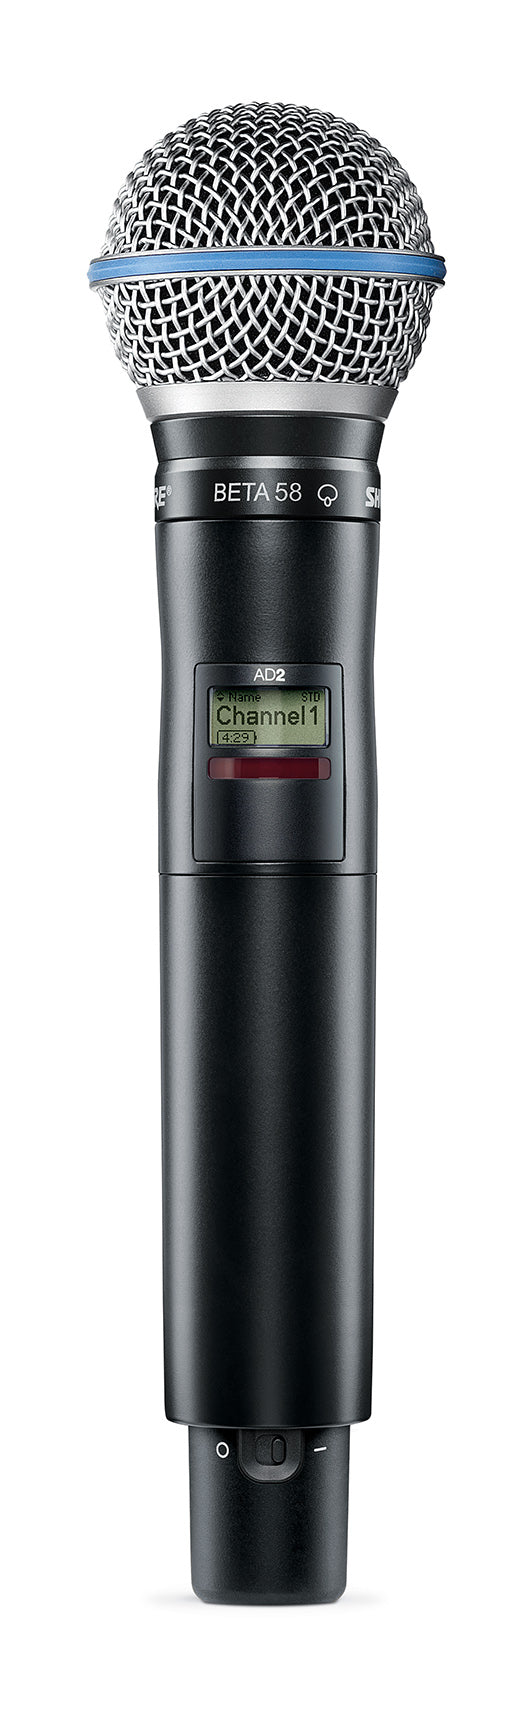 Shure AD2/B58 Axient Digital Handheld Transmitter W/ Beta58 Cartridge